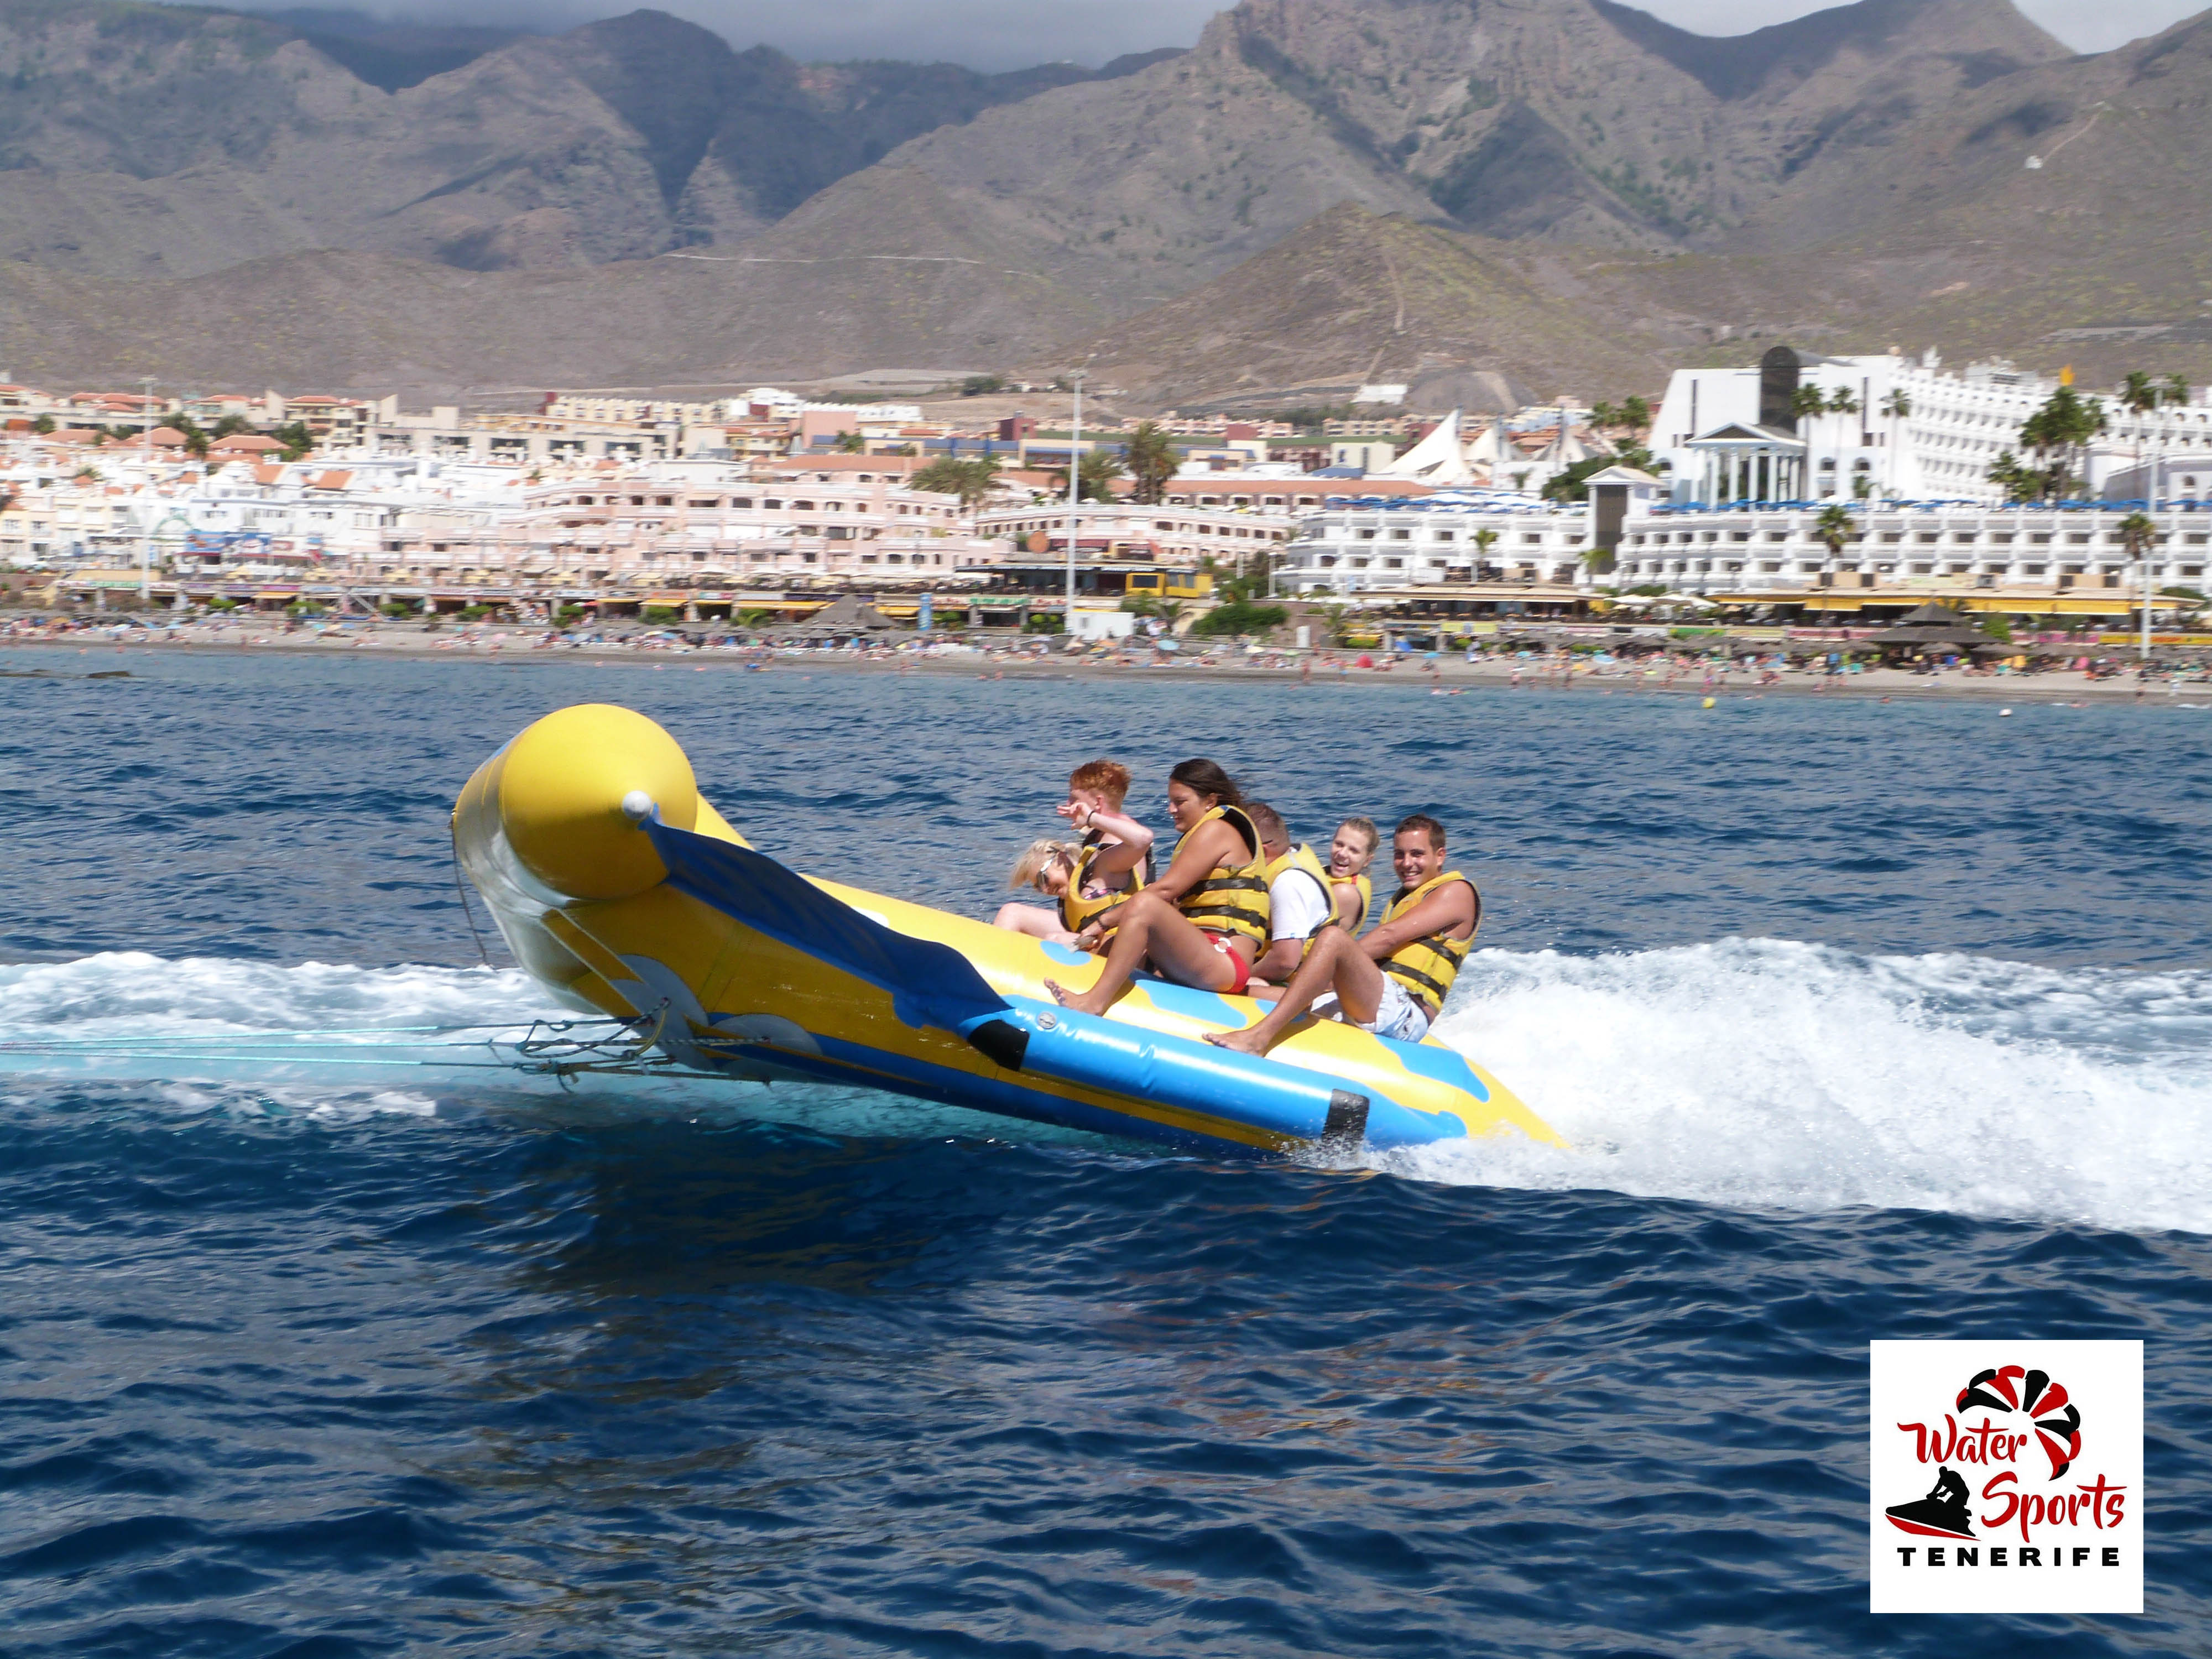 watersport flyfish tenerife norte